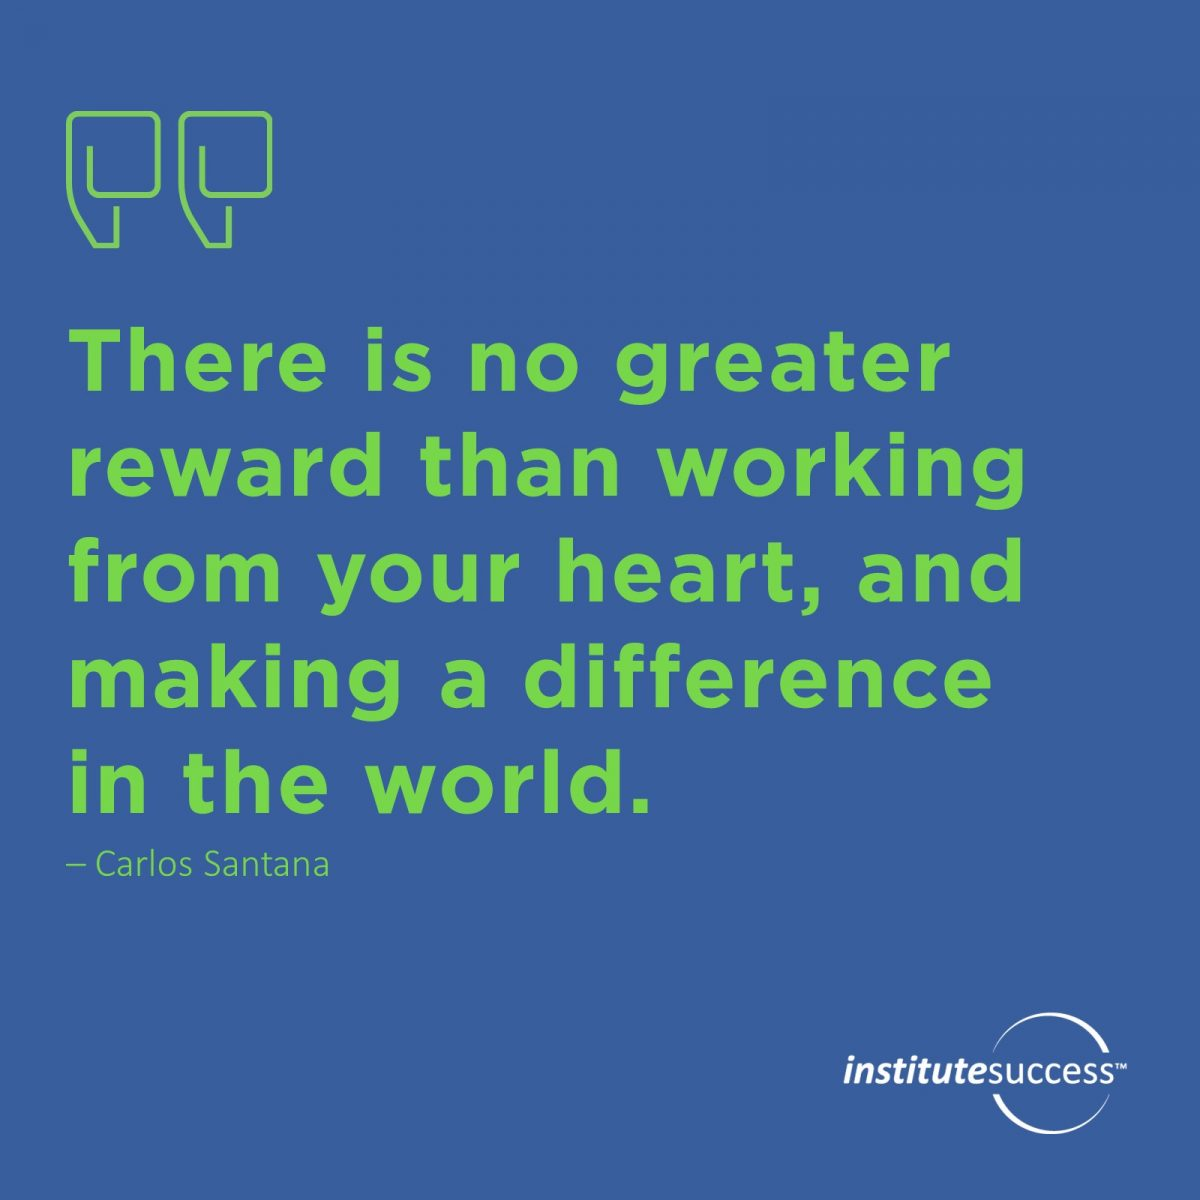 There is no greater reward than working from your heart, and making a difference in the world. Carlos Santana